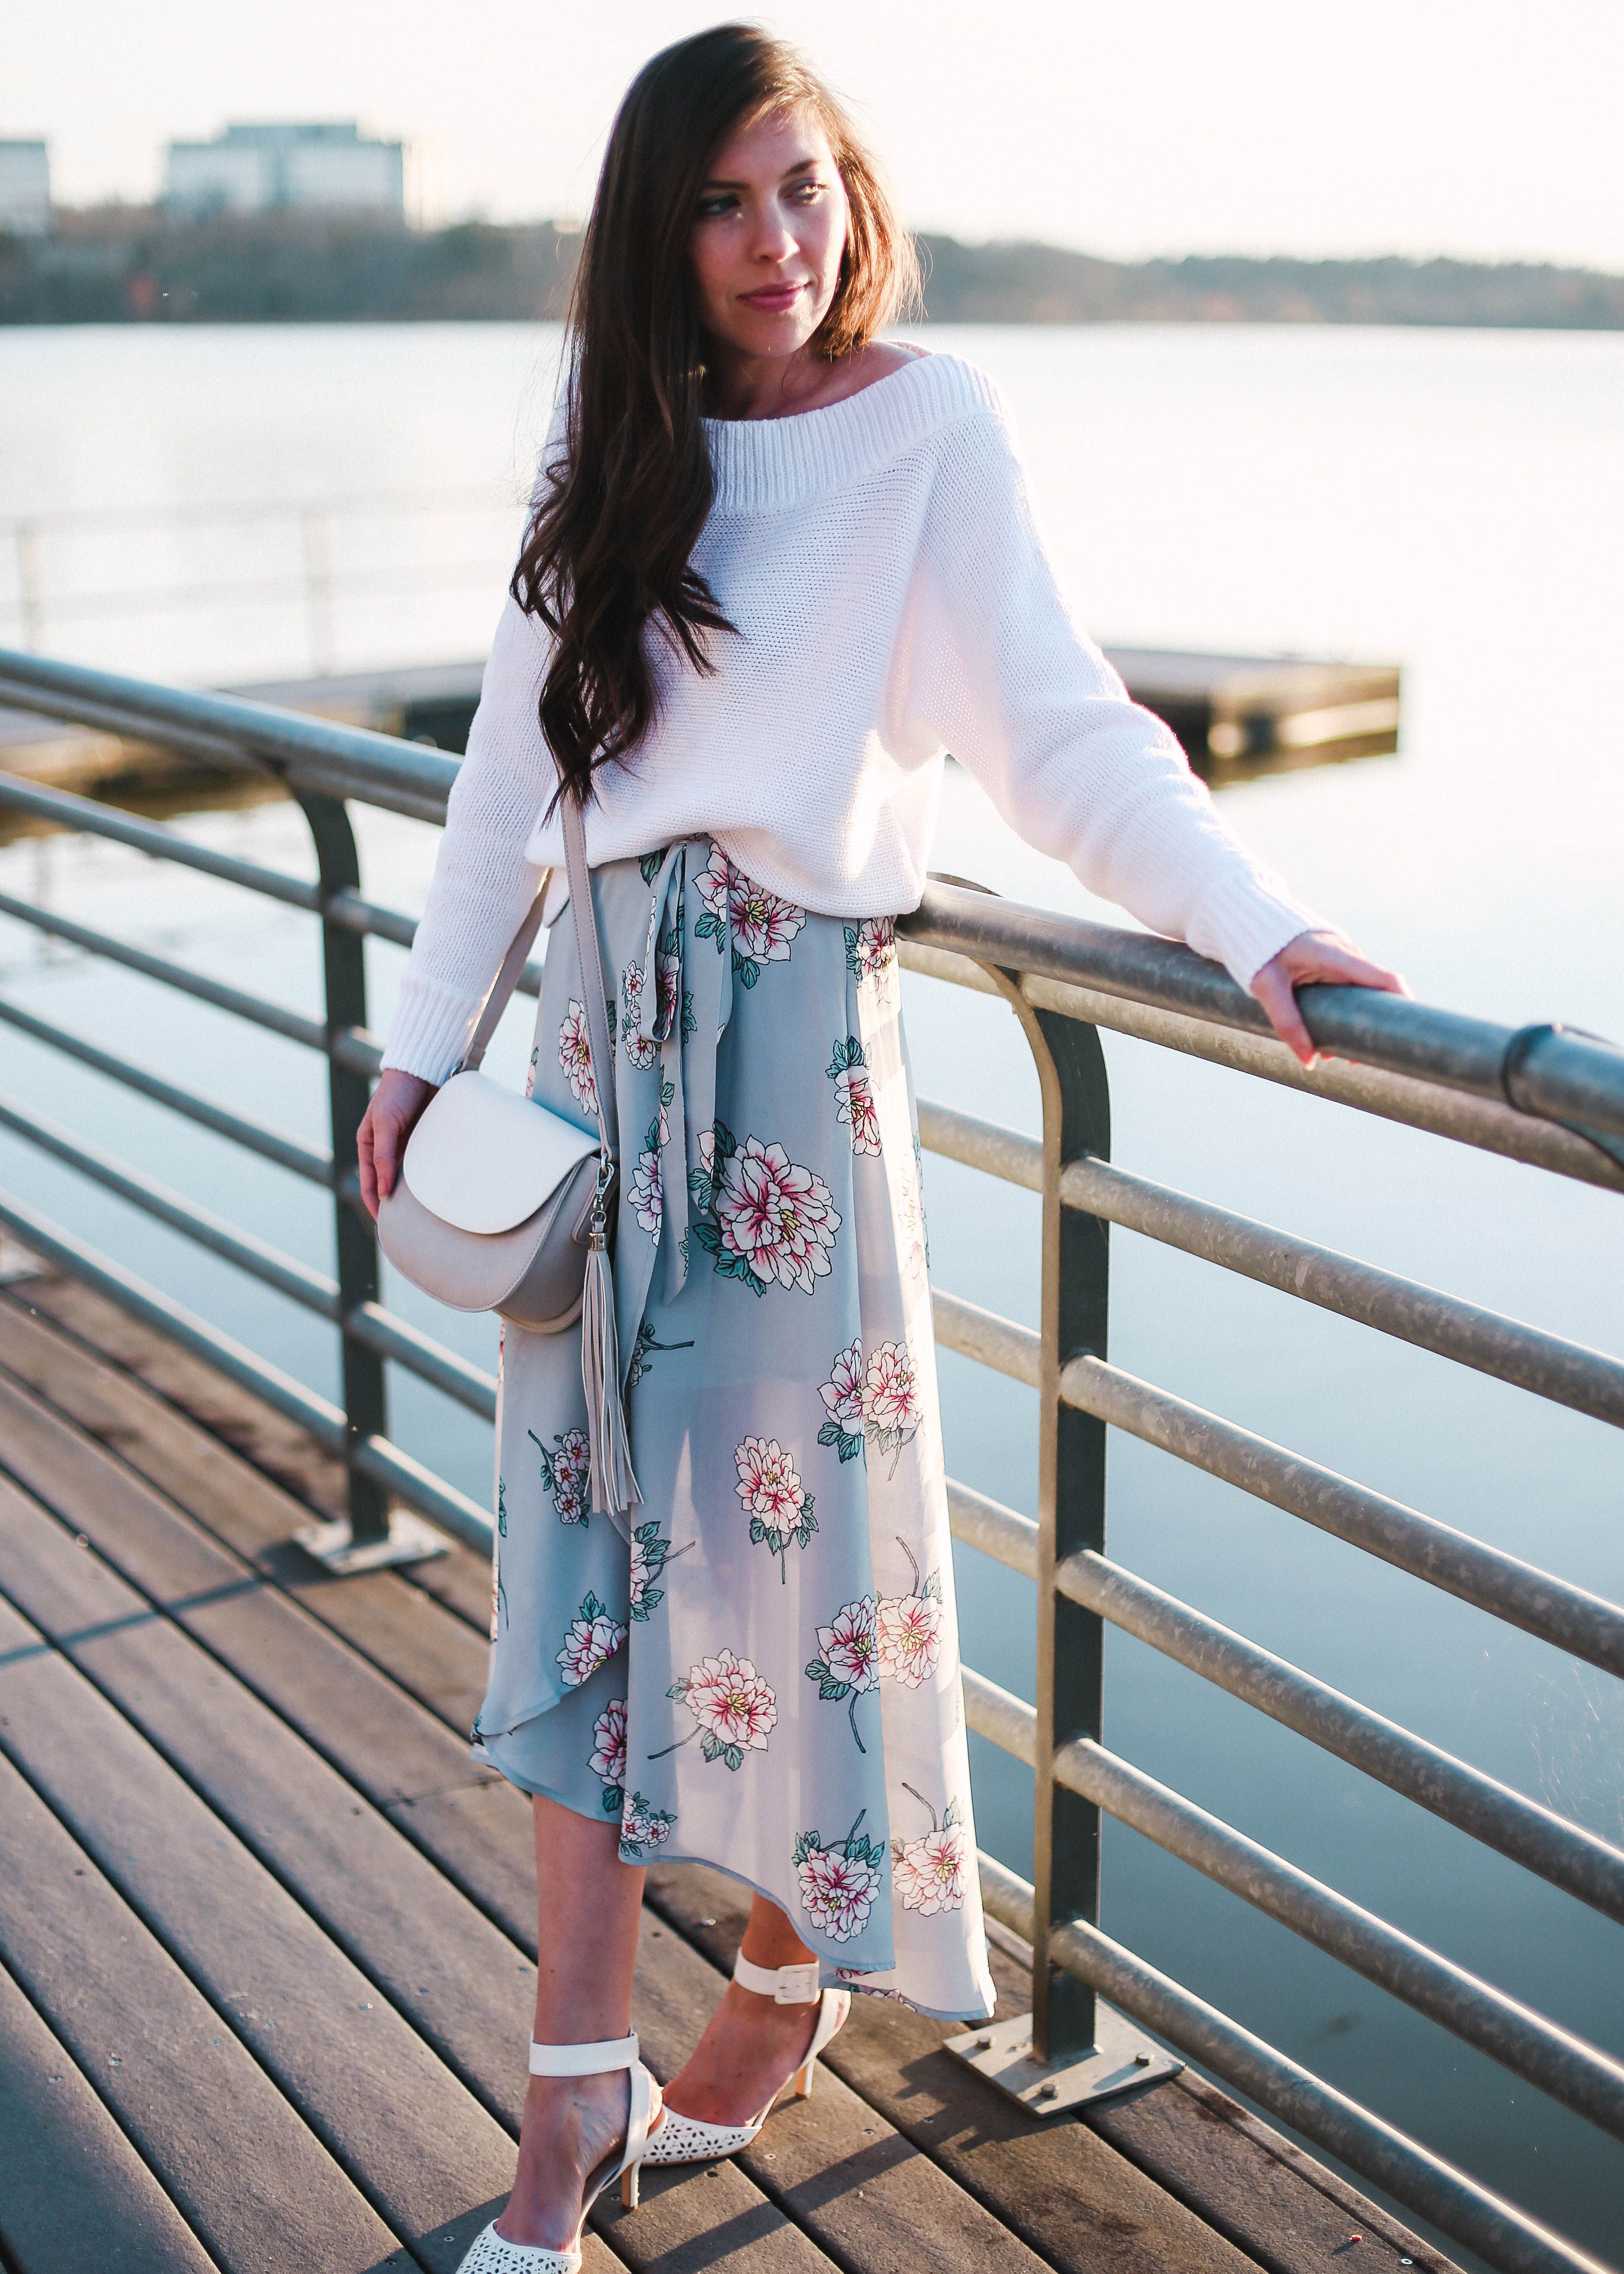 b3f7a6ec4b Nordstrom Floral Wrap Skirt, Sam Edelman Odynna White Pointy Toe Pumps  Ankle Strap Shoes, White Sweater GAP, Pretty in the Pines North Carolina  Style ...